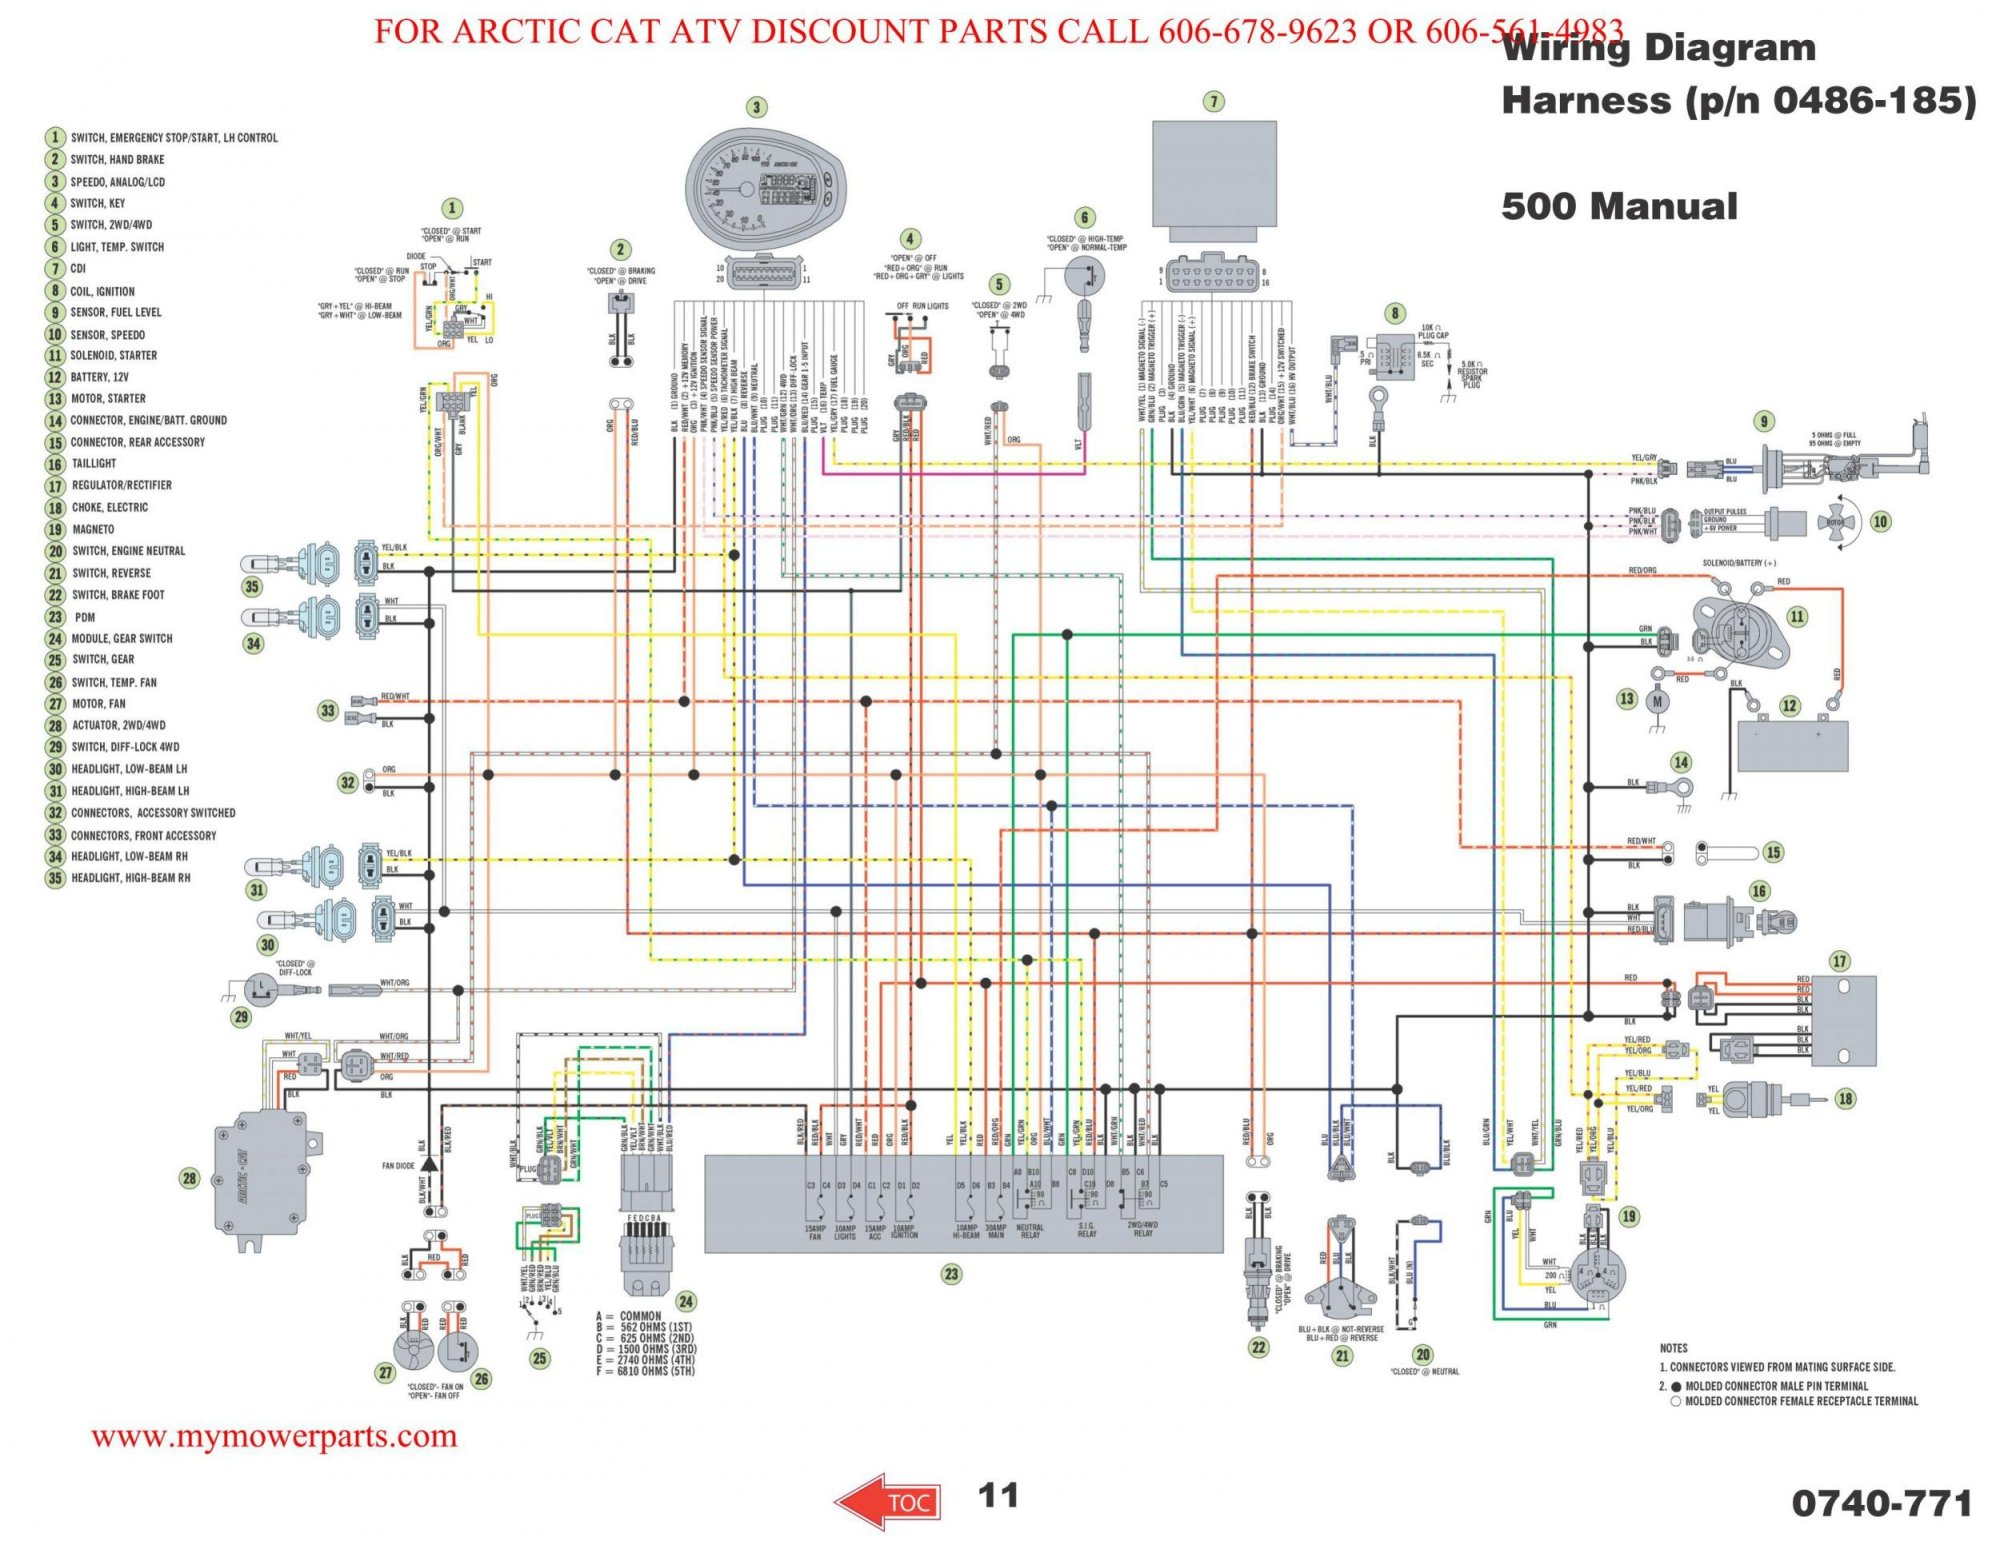 hight resolution of arctic cat 350 wiring diagram wiring diagram forward 2011 arctic cat atv 700 wiring diagram